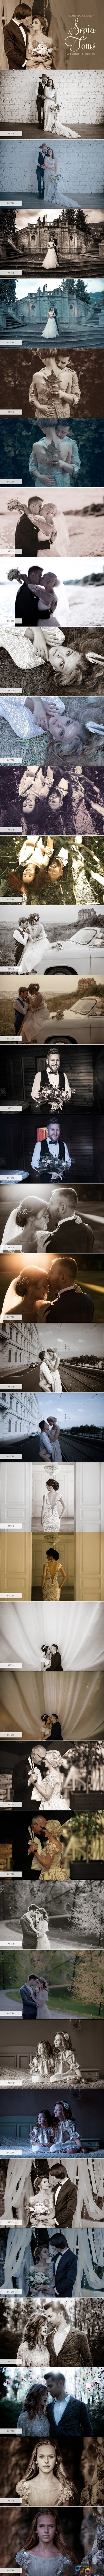 Sepia Tones Presets for Lightroom 4287055 1